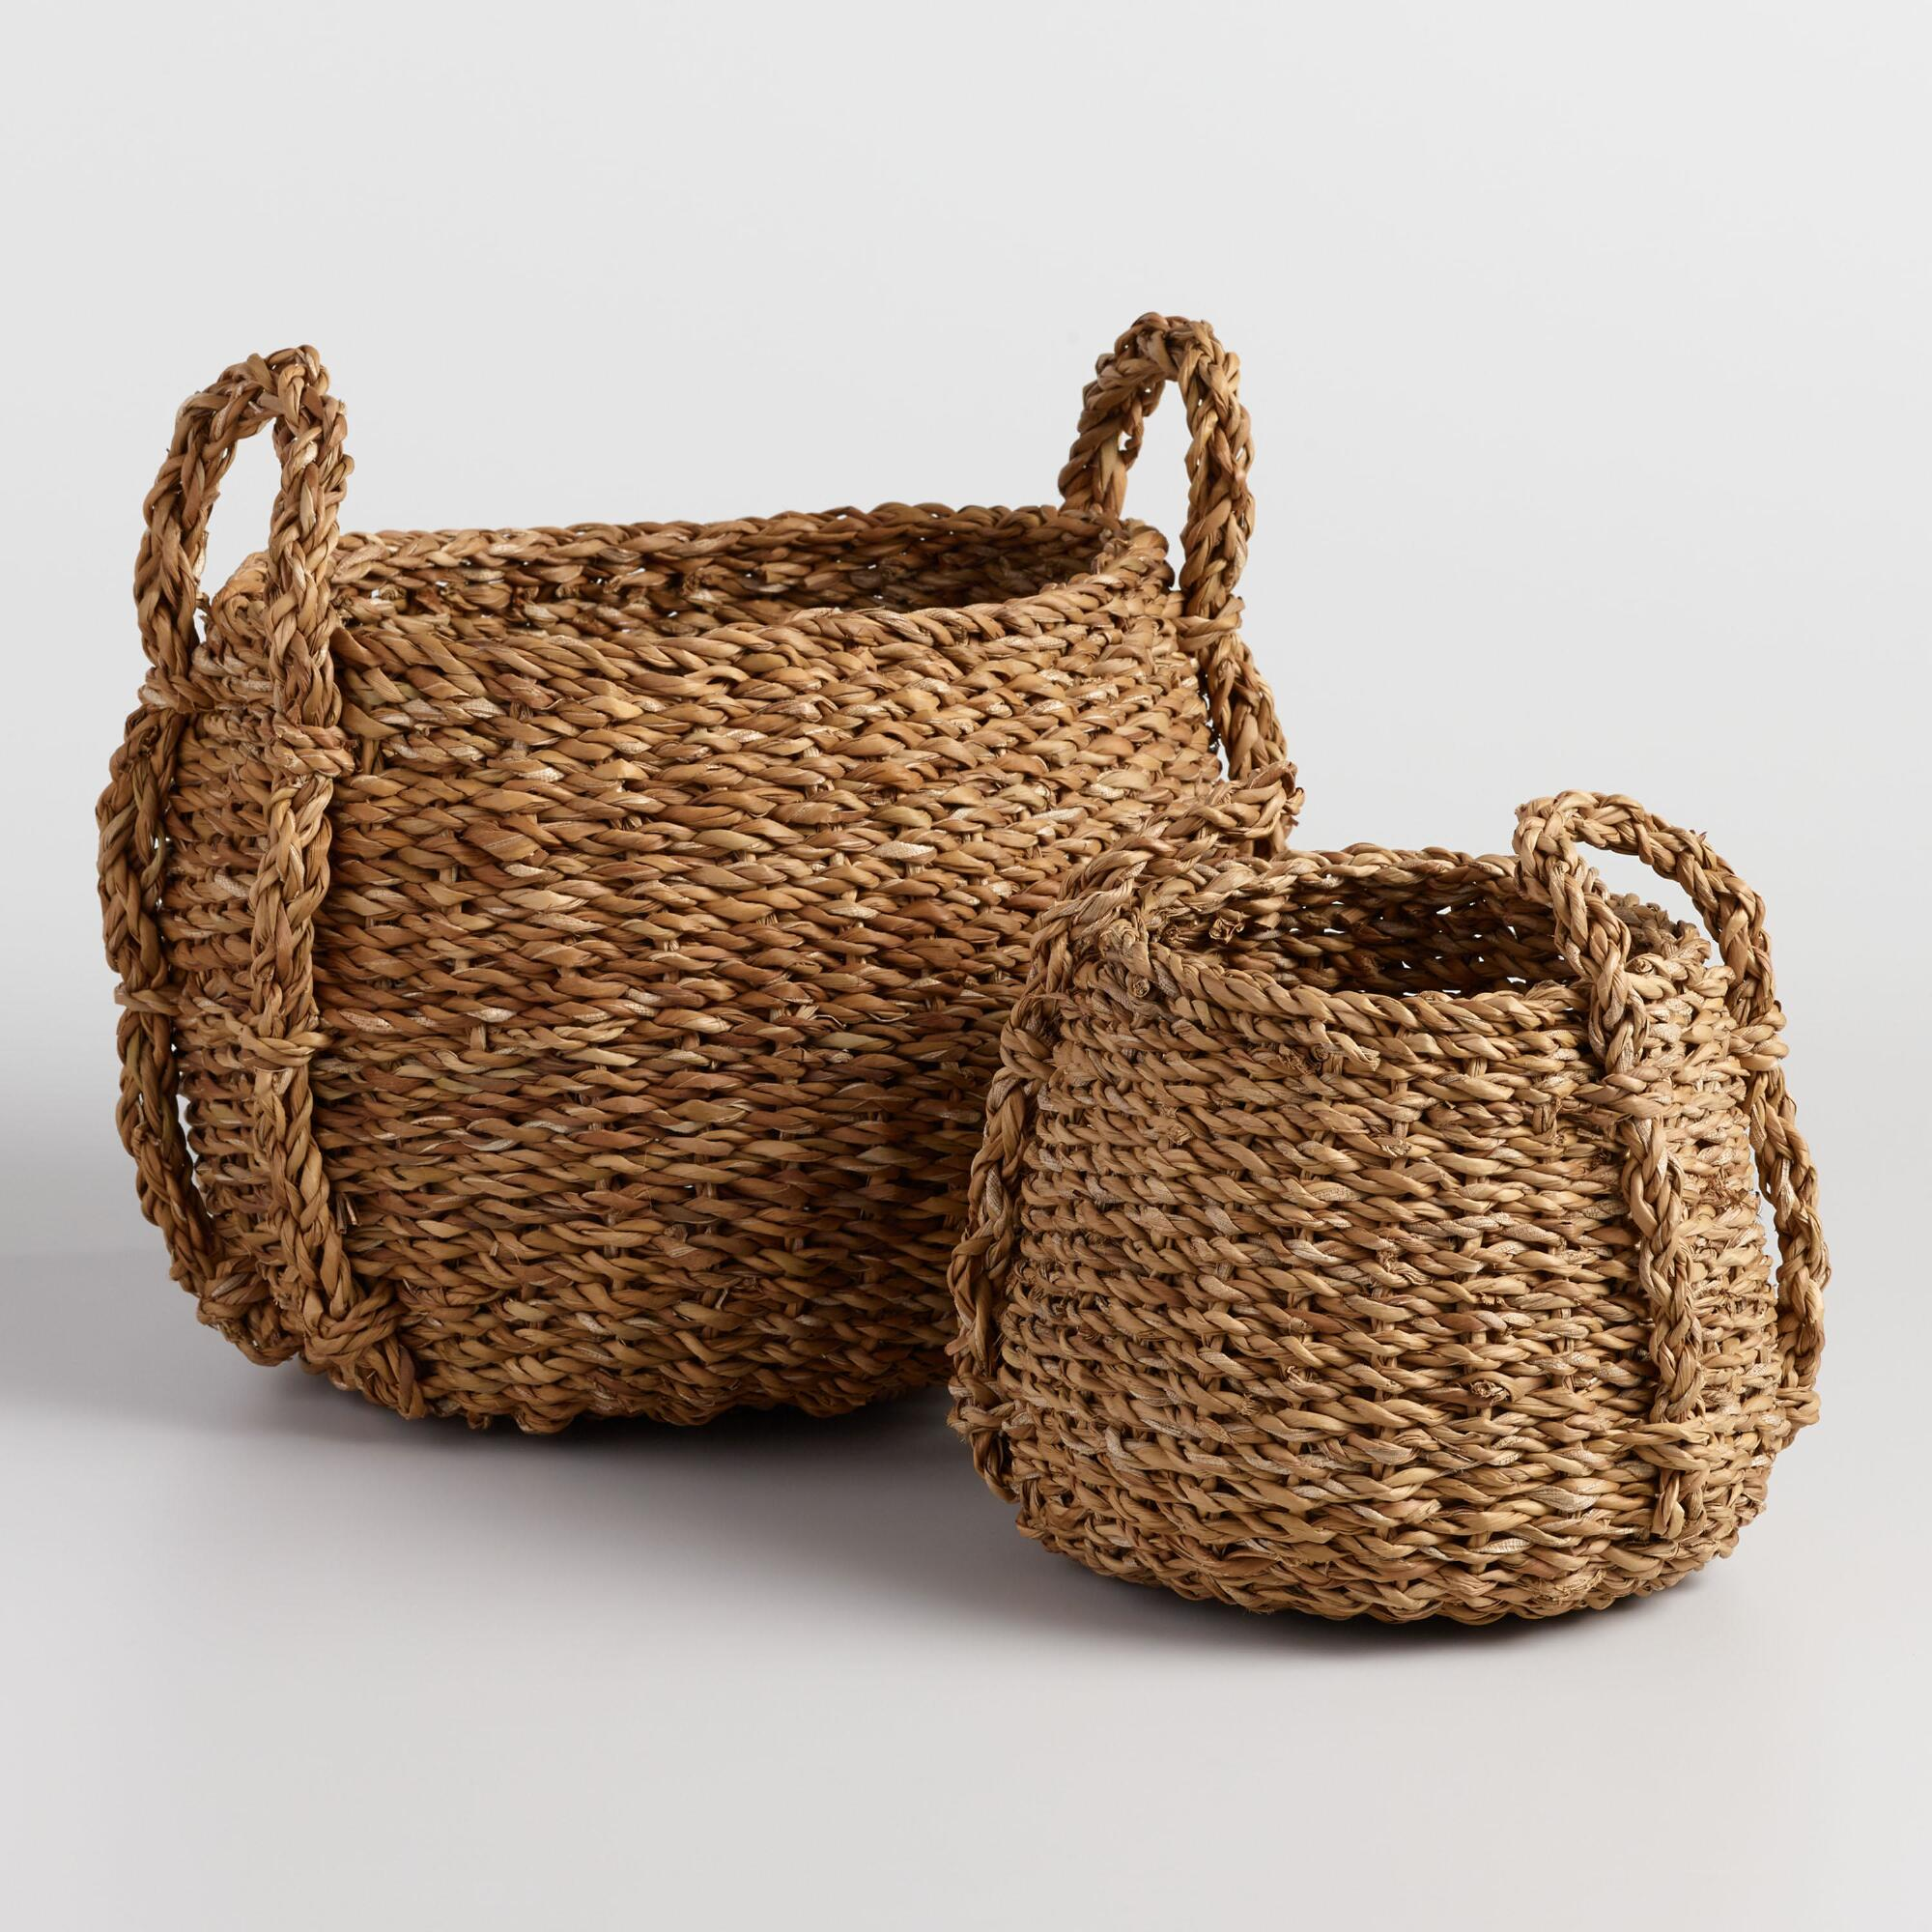 Natural Seagrass Round Jade Tote Baskets - Medium by World Market Medium